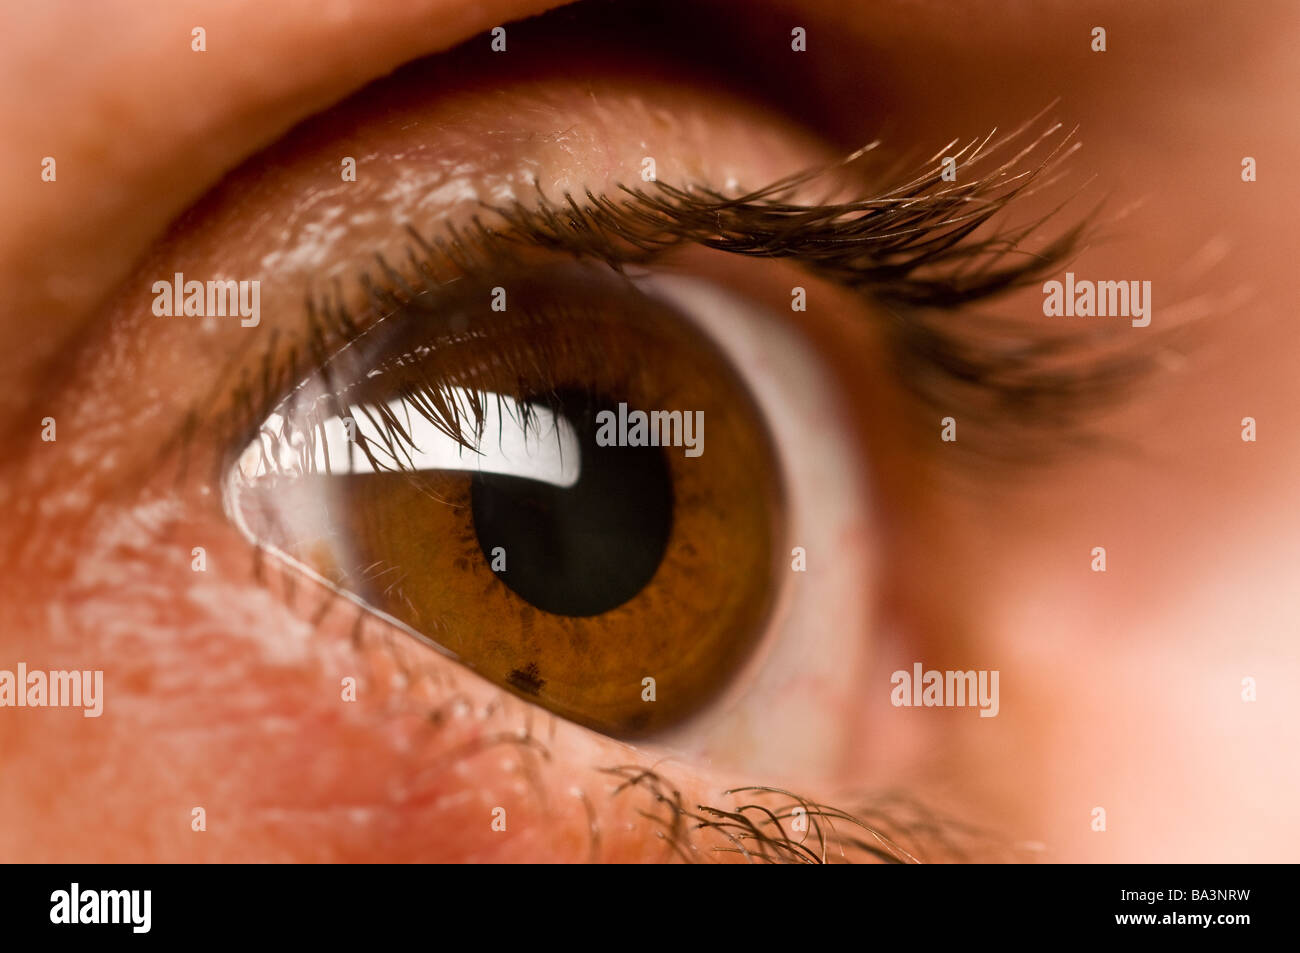 eye eyelashes - Stock Image